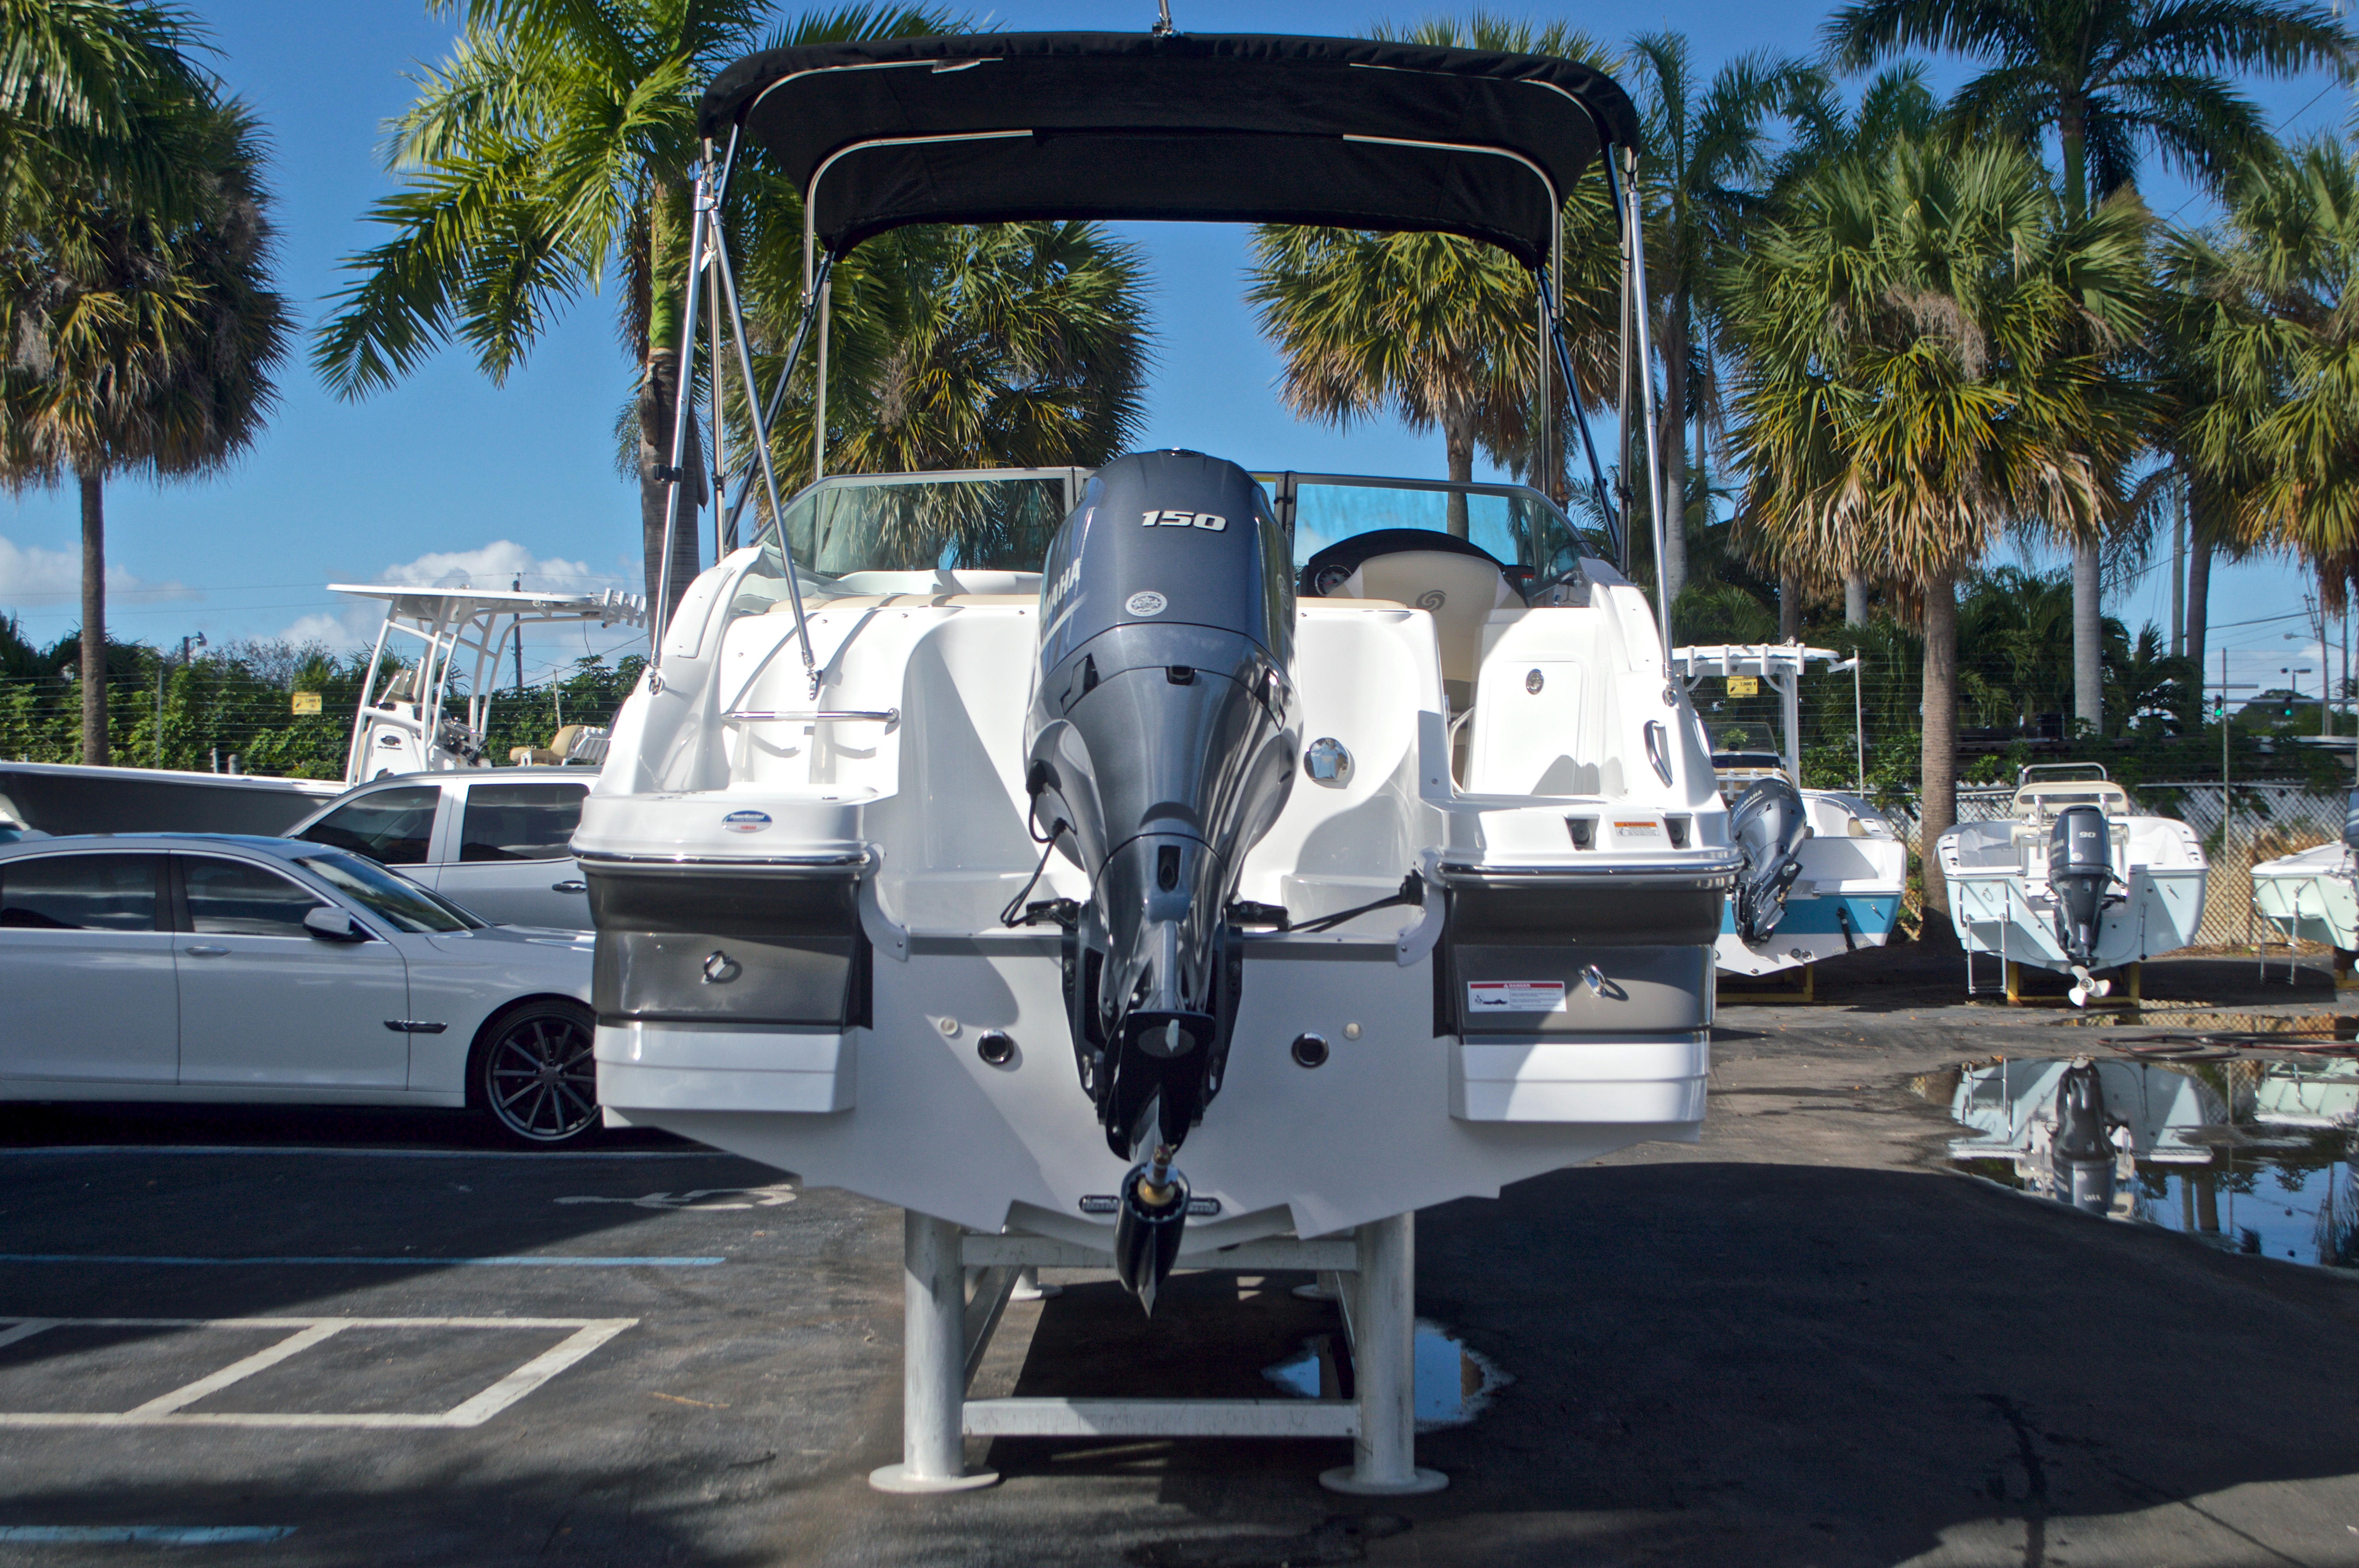 Thumbnail 7 for New 2017 Hurricane SunDeck SD 2200 OB boat for sale in West Palm Beach, FL